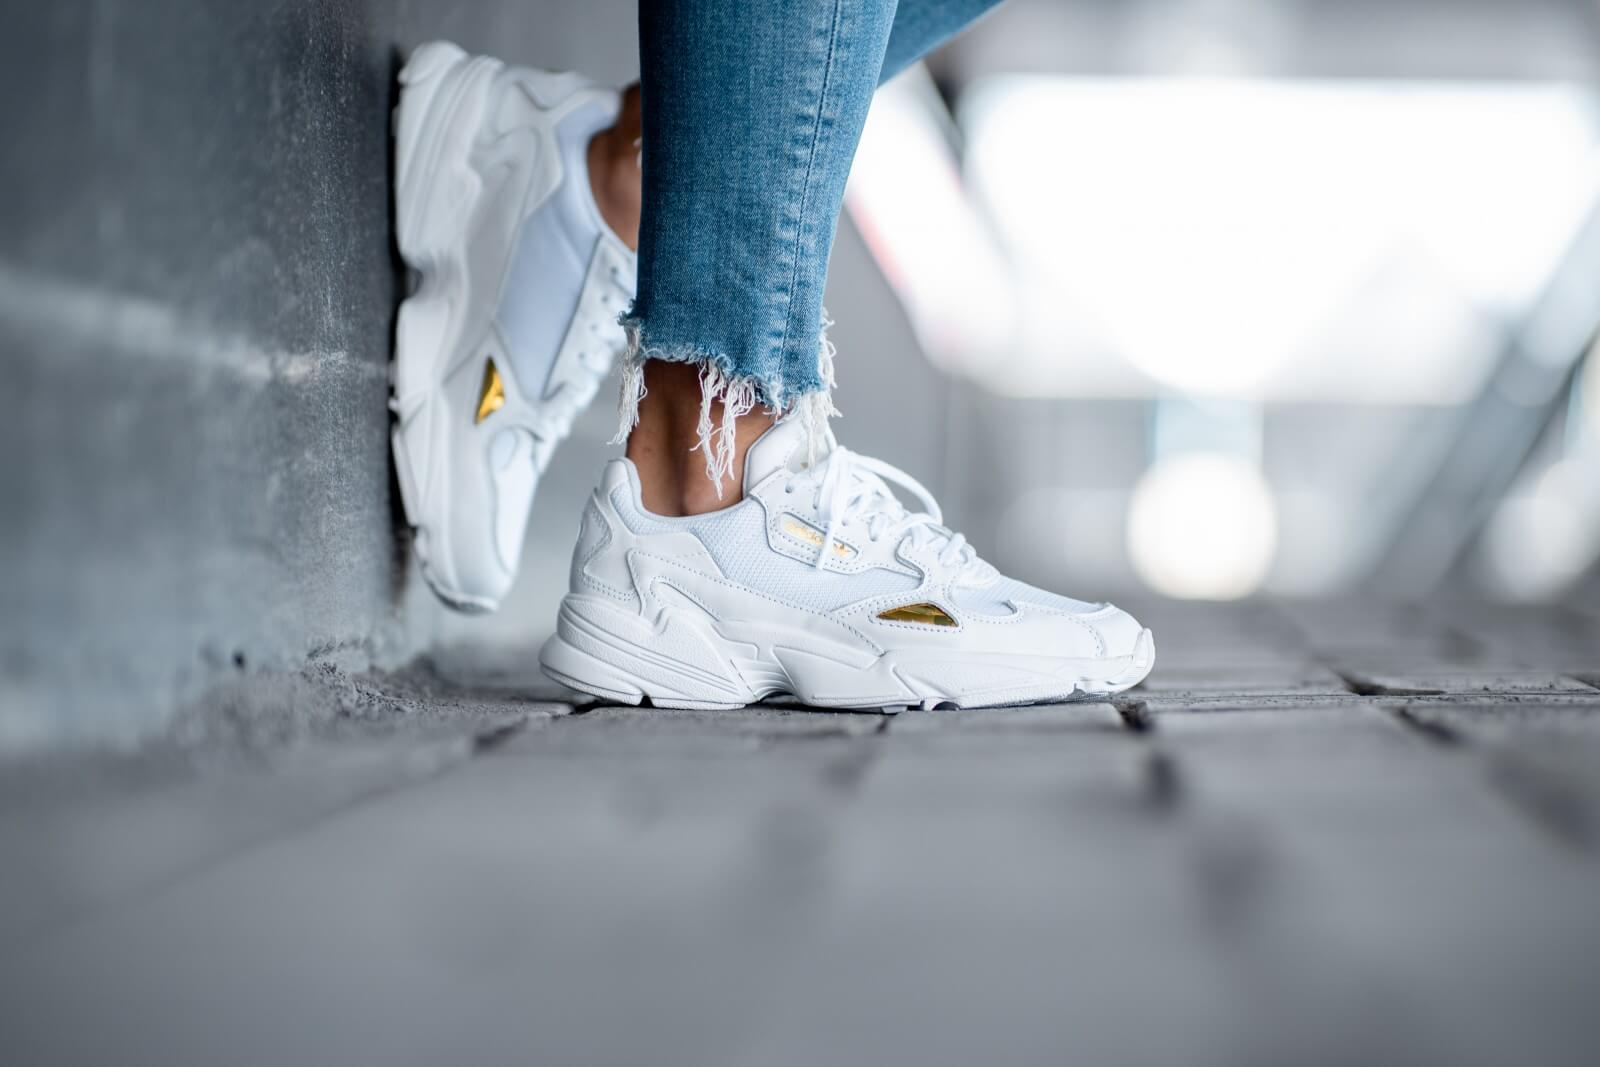 Adidas Women's Falcon Footwear White/Gold Metallic